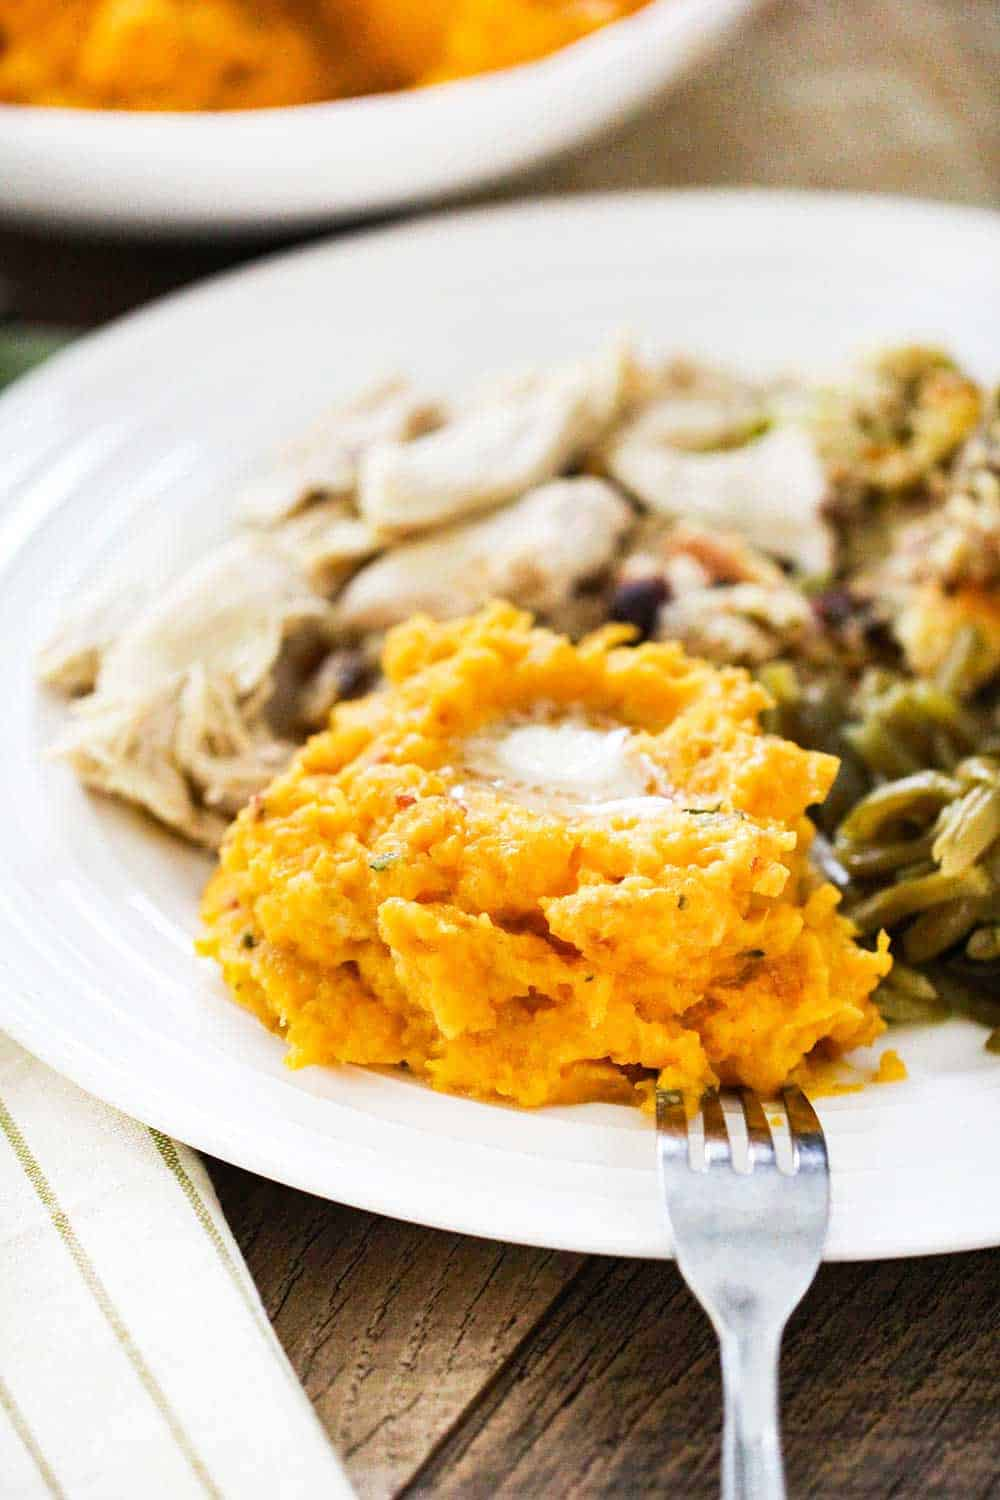 A plate of mashed butternut squash topped with butter, next to roasted turkey, stuffing and green beans.